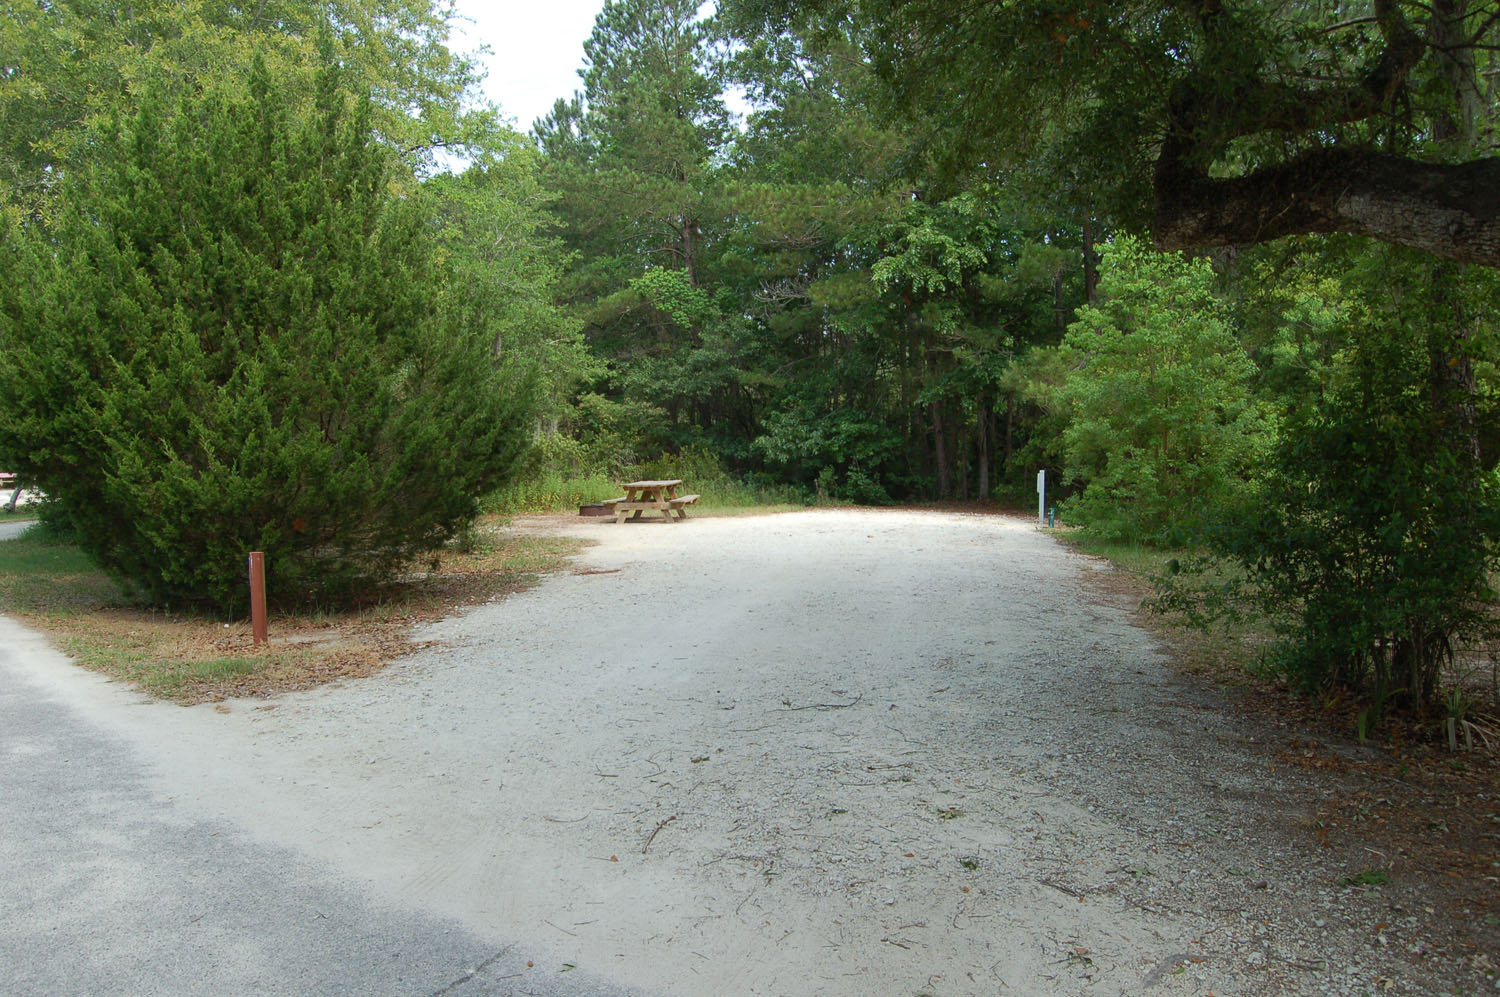 Image of campsite #53 at the Campground at James Island County Park